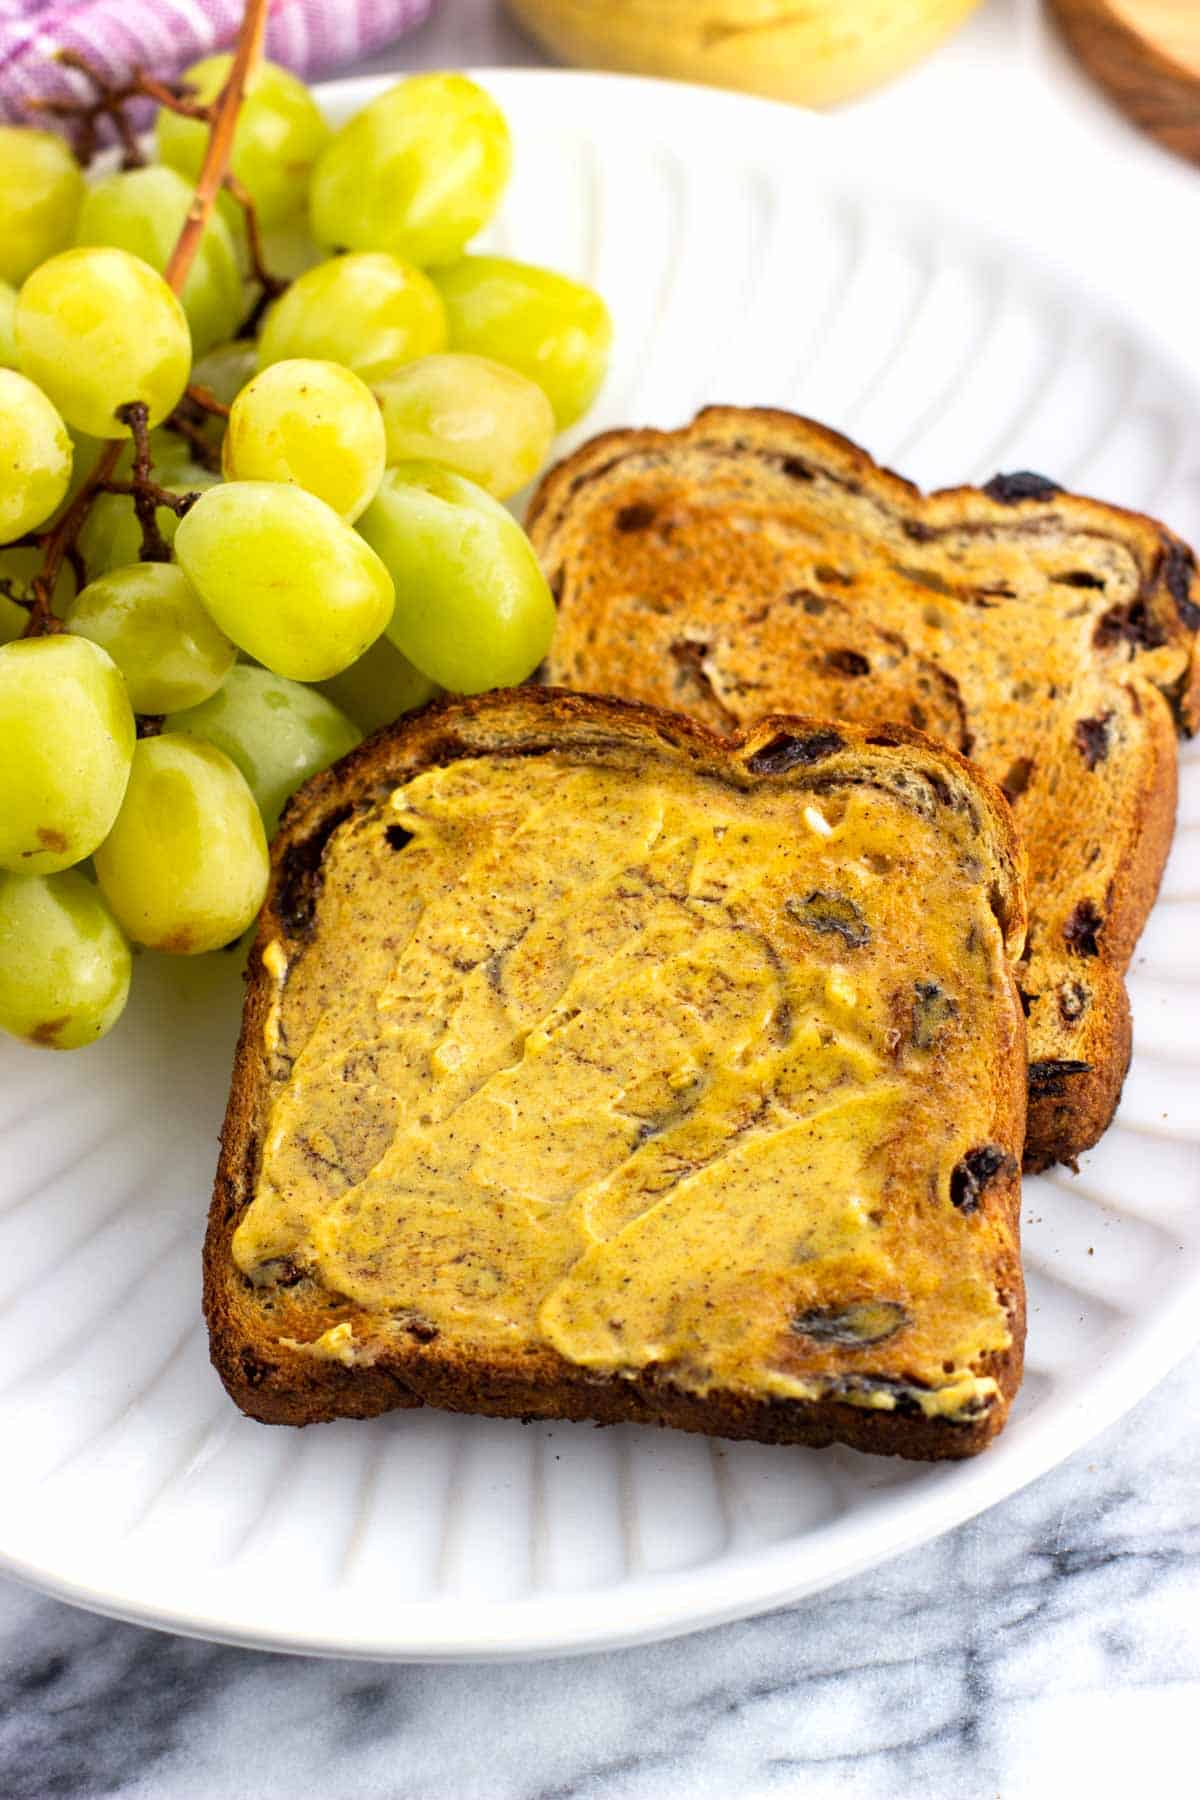 Toast slathered with pumpkin spice butter on a plate with grapes.